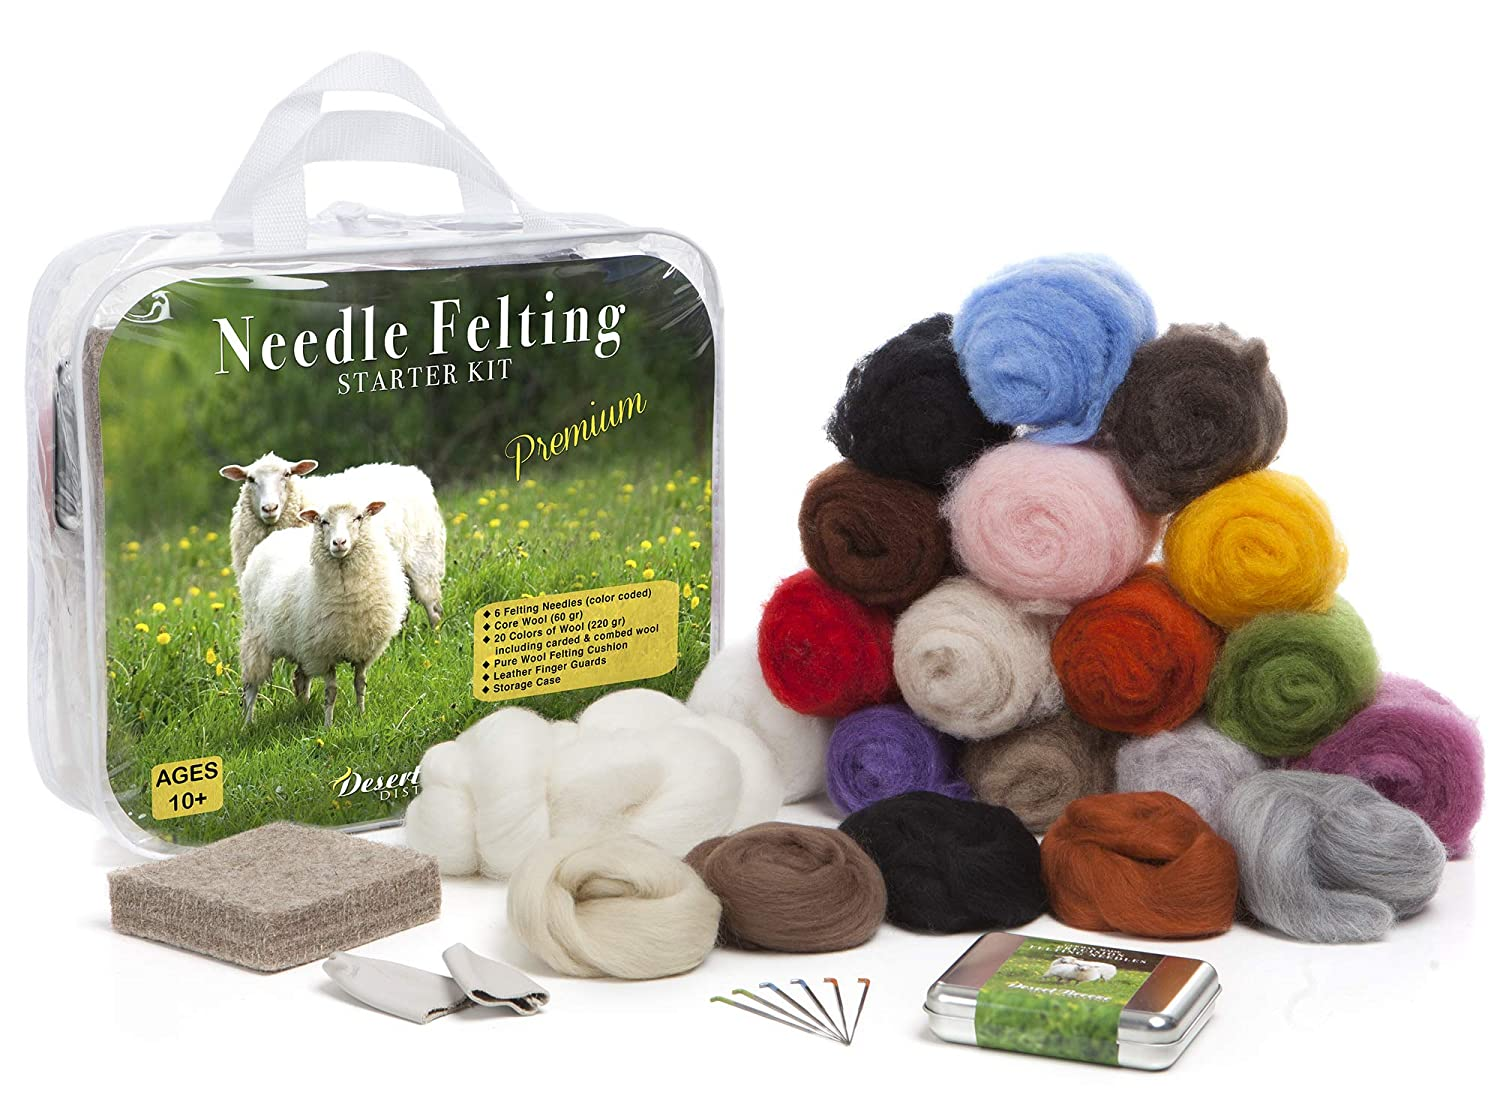 Pure Wool Felting Pad 6 Needles Various Sizes 20 Colors Wool Premium Needle Felting Kit for Beginners Storage Case Leather Finger Guards